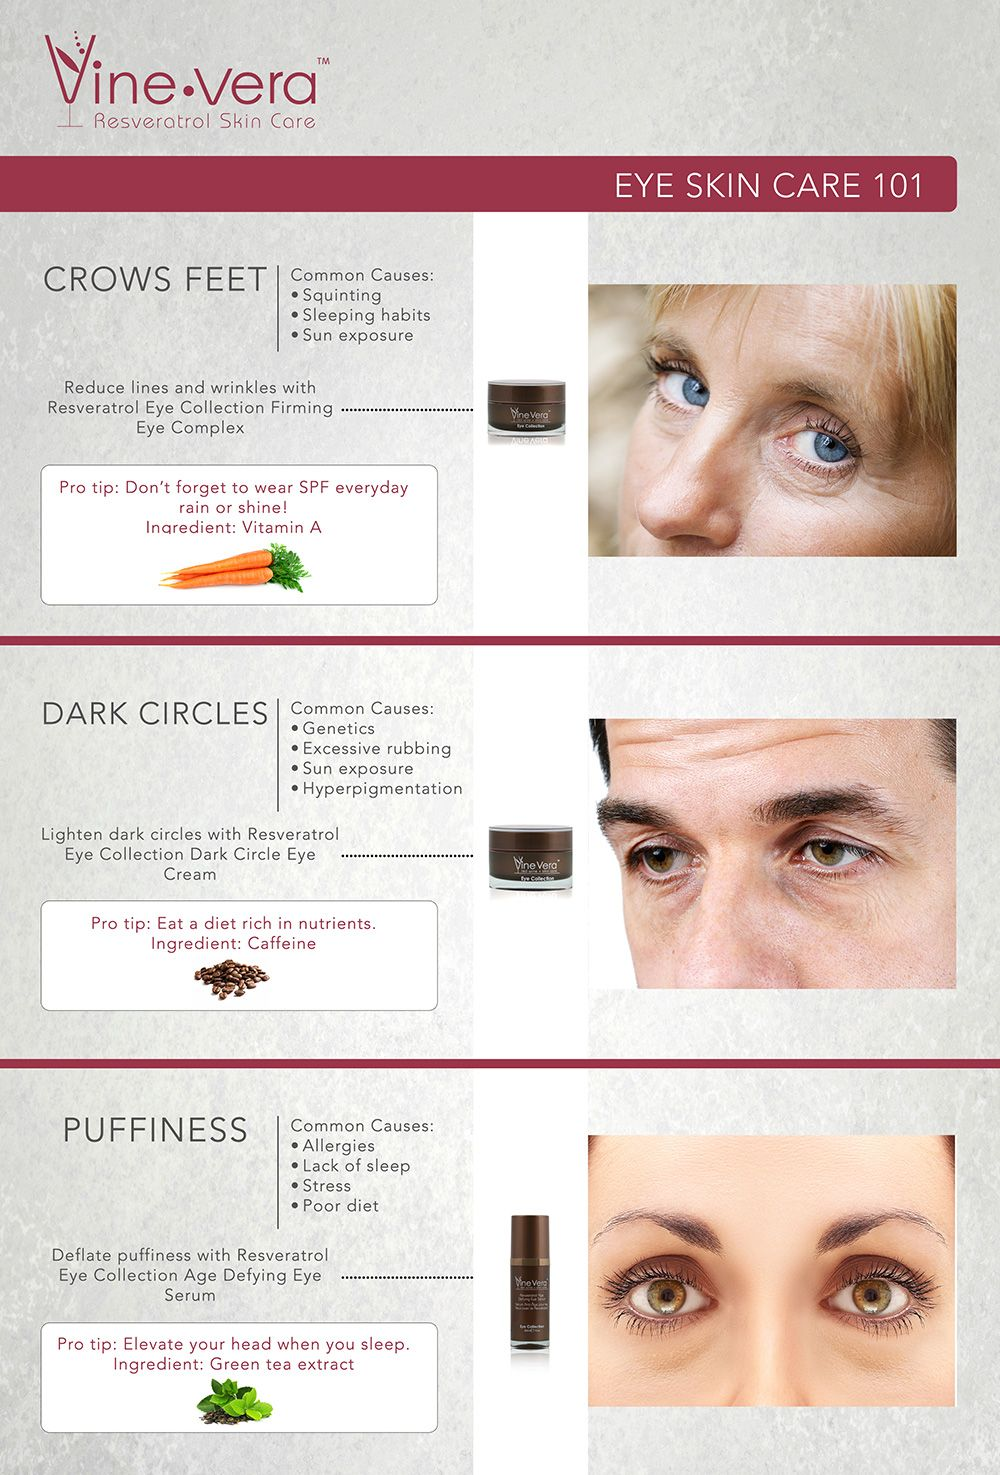 How To Care For The Skin Around The Eyes Vine Vera Eye Skin Care Skin Care Skin